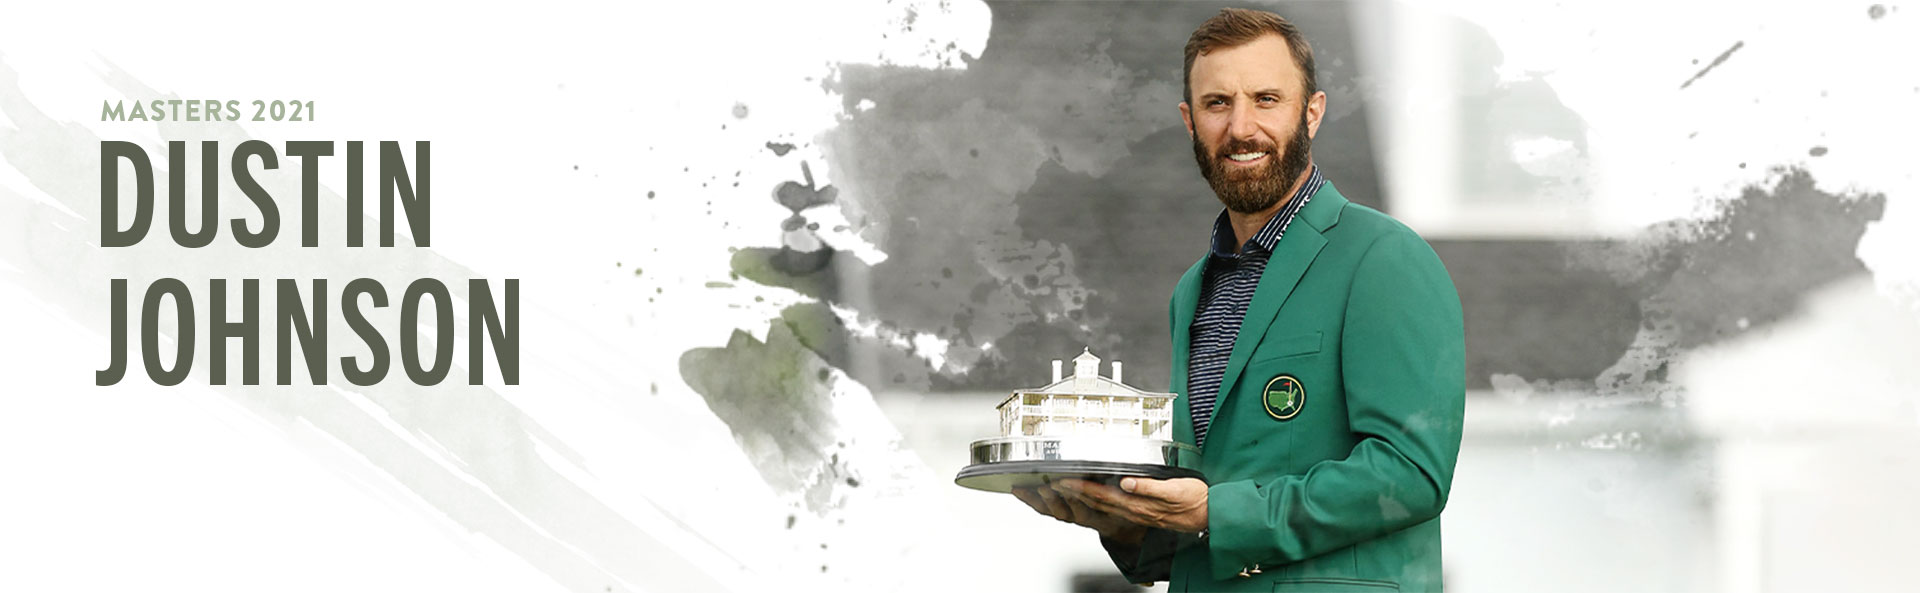 2021-us-masters-dustin-johnson